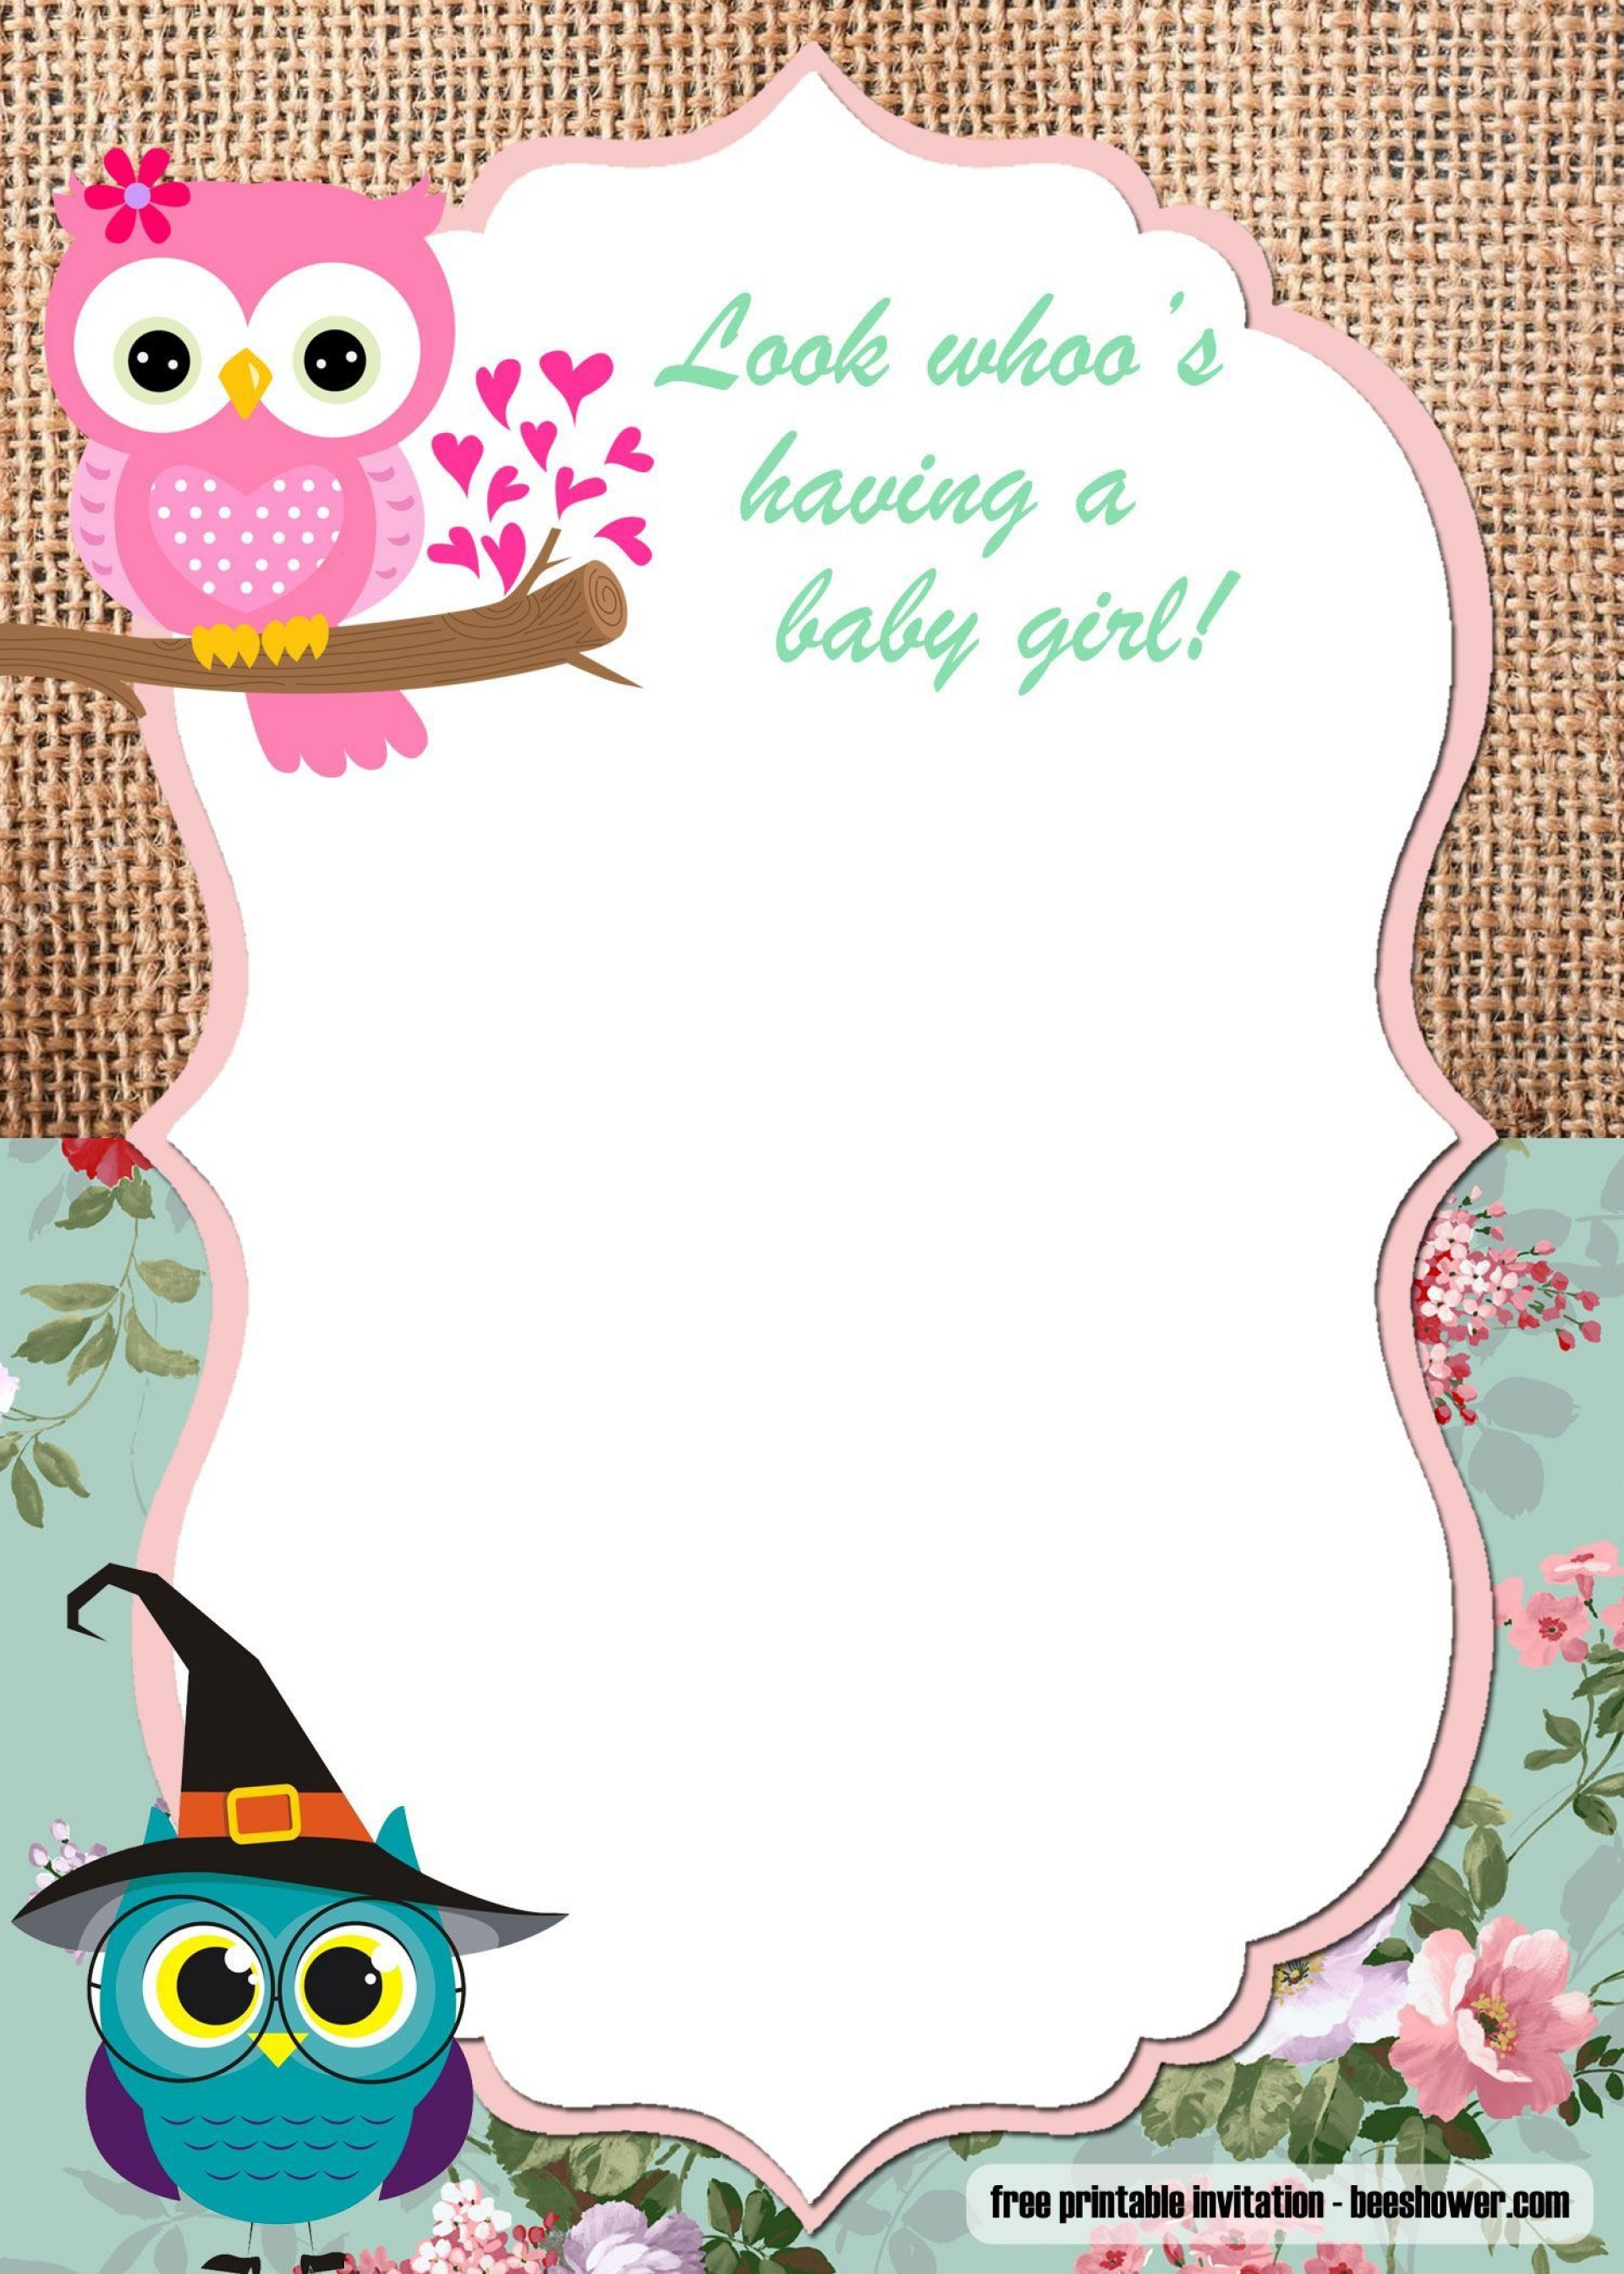 000 Unbelievable Baby Shower Template Free Printable Photo  Superhero Invitation For A Boy Diaper1920